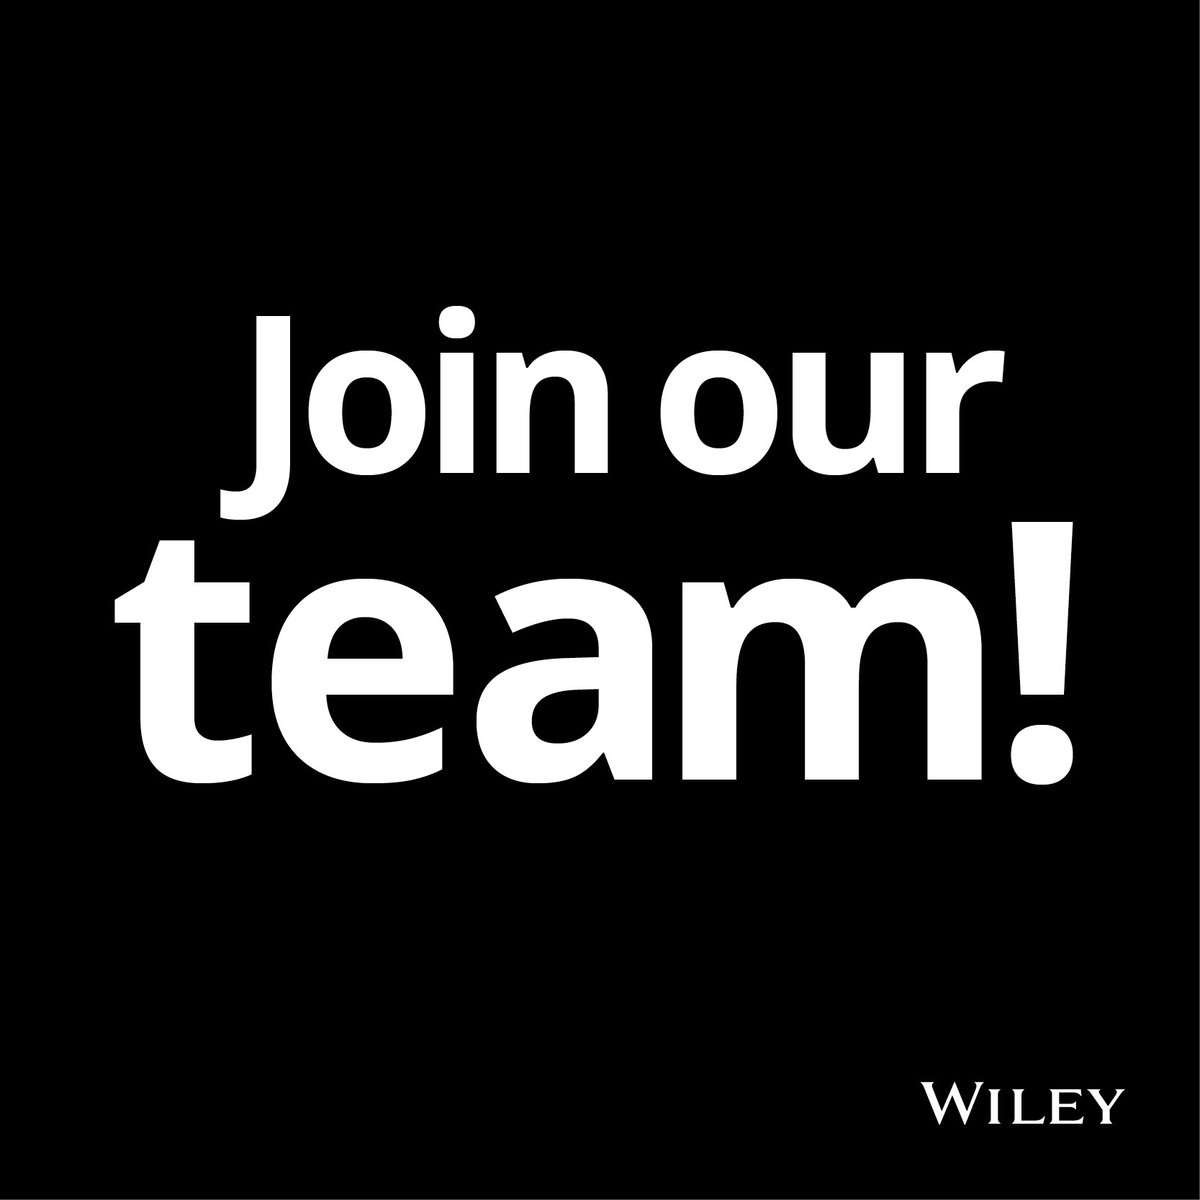 wiley on do you have experience in journal production wiley on do you have experience in journal production we re looking for a sr production editor for our malden